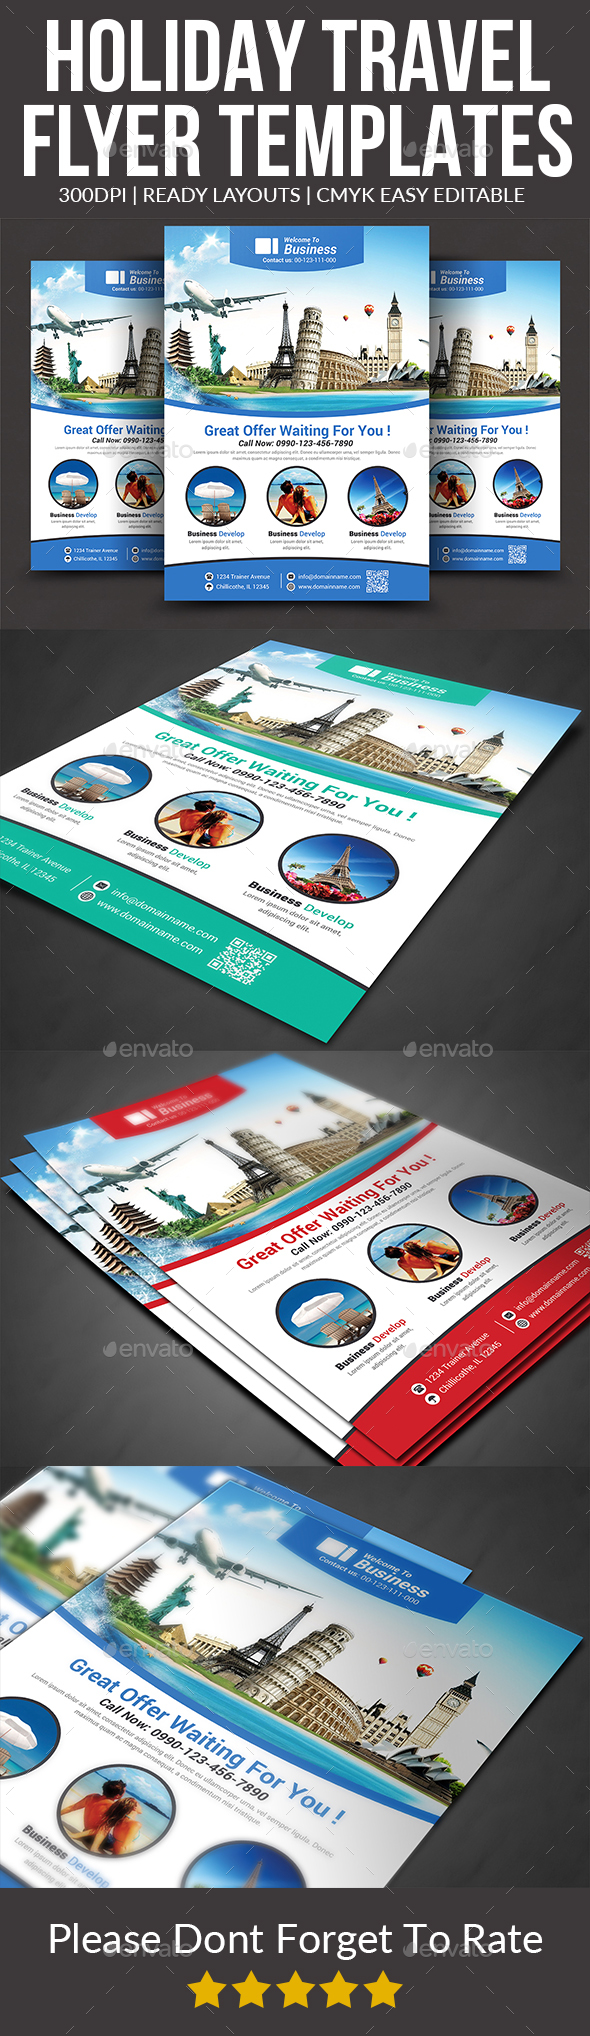 Holiday Travel Flyer Templates - Corporate Flyers